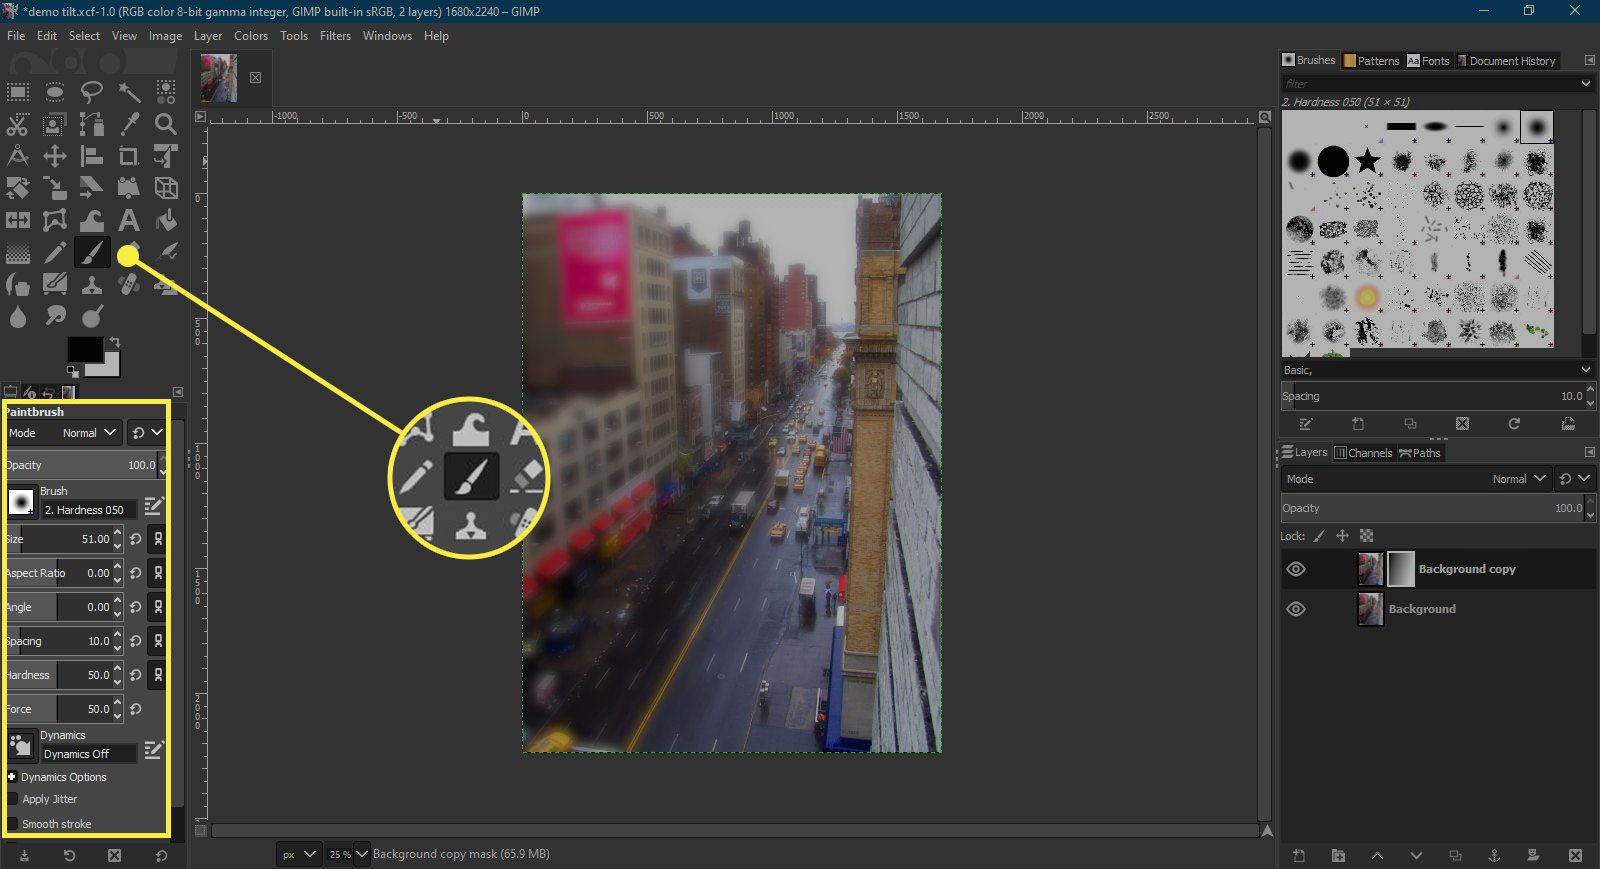 A screenshot of GIMP with the Paintbrush tool and options highlighted